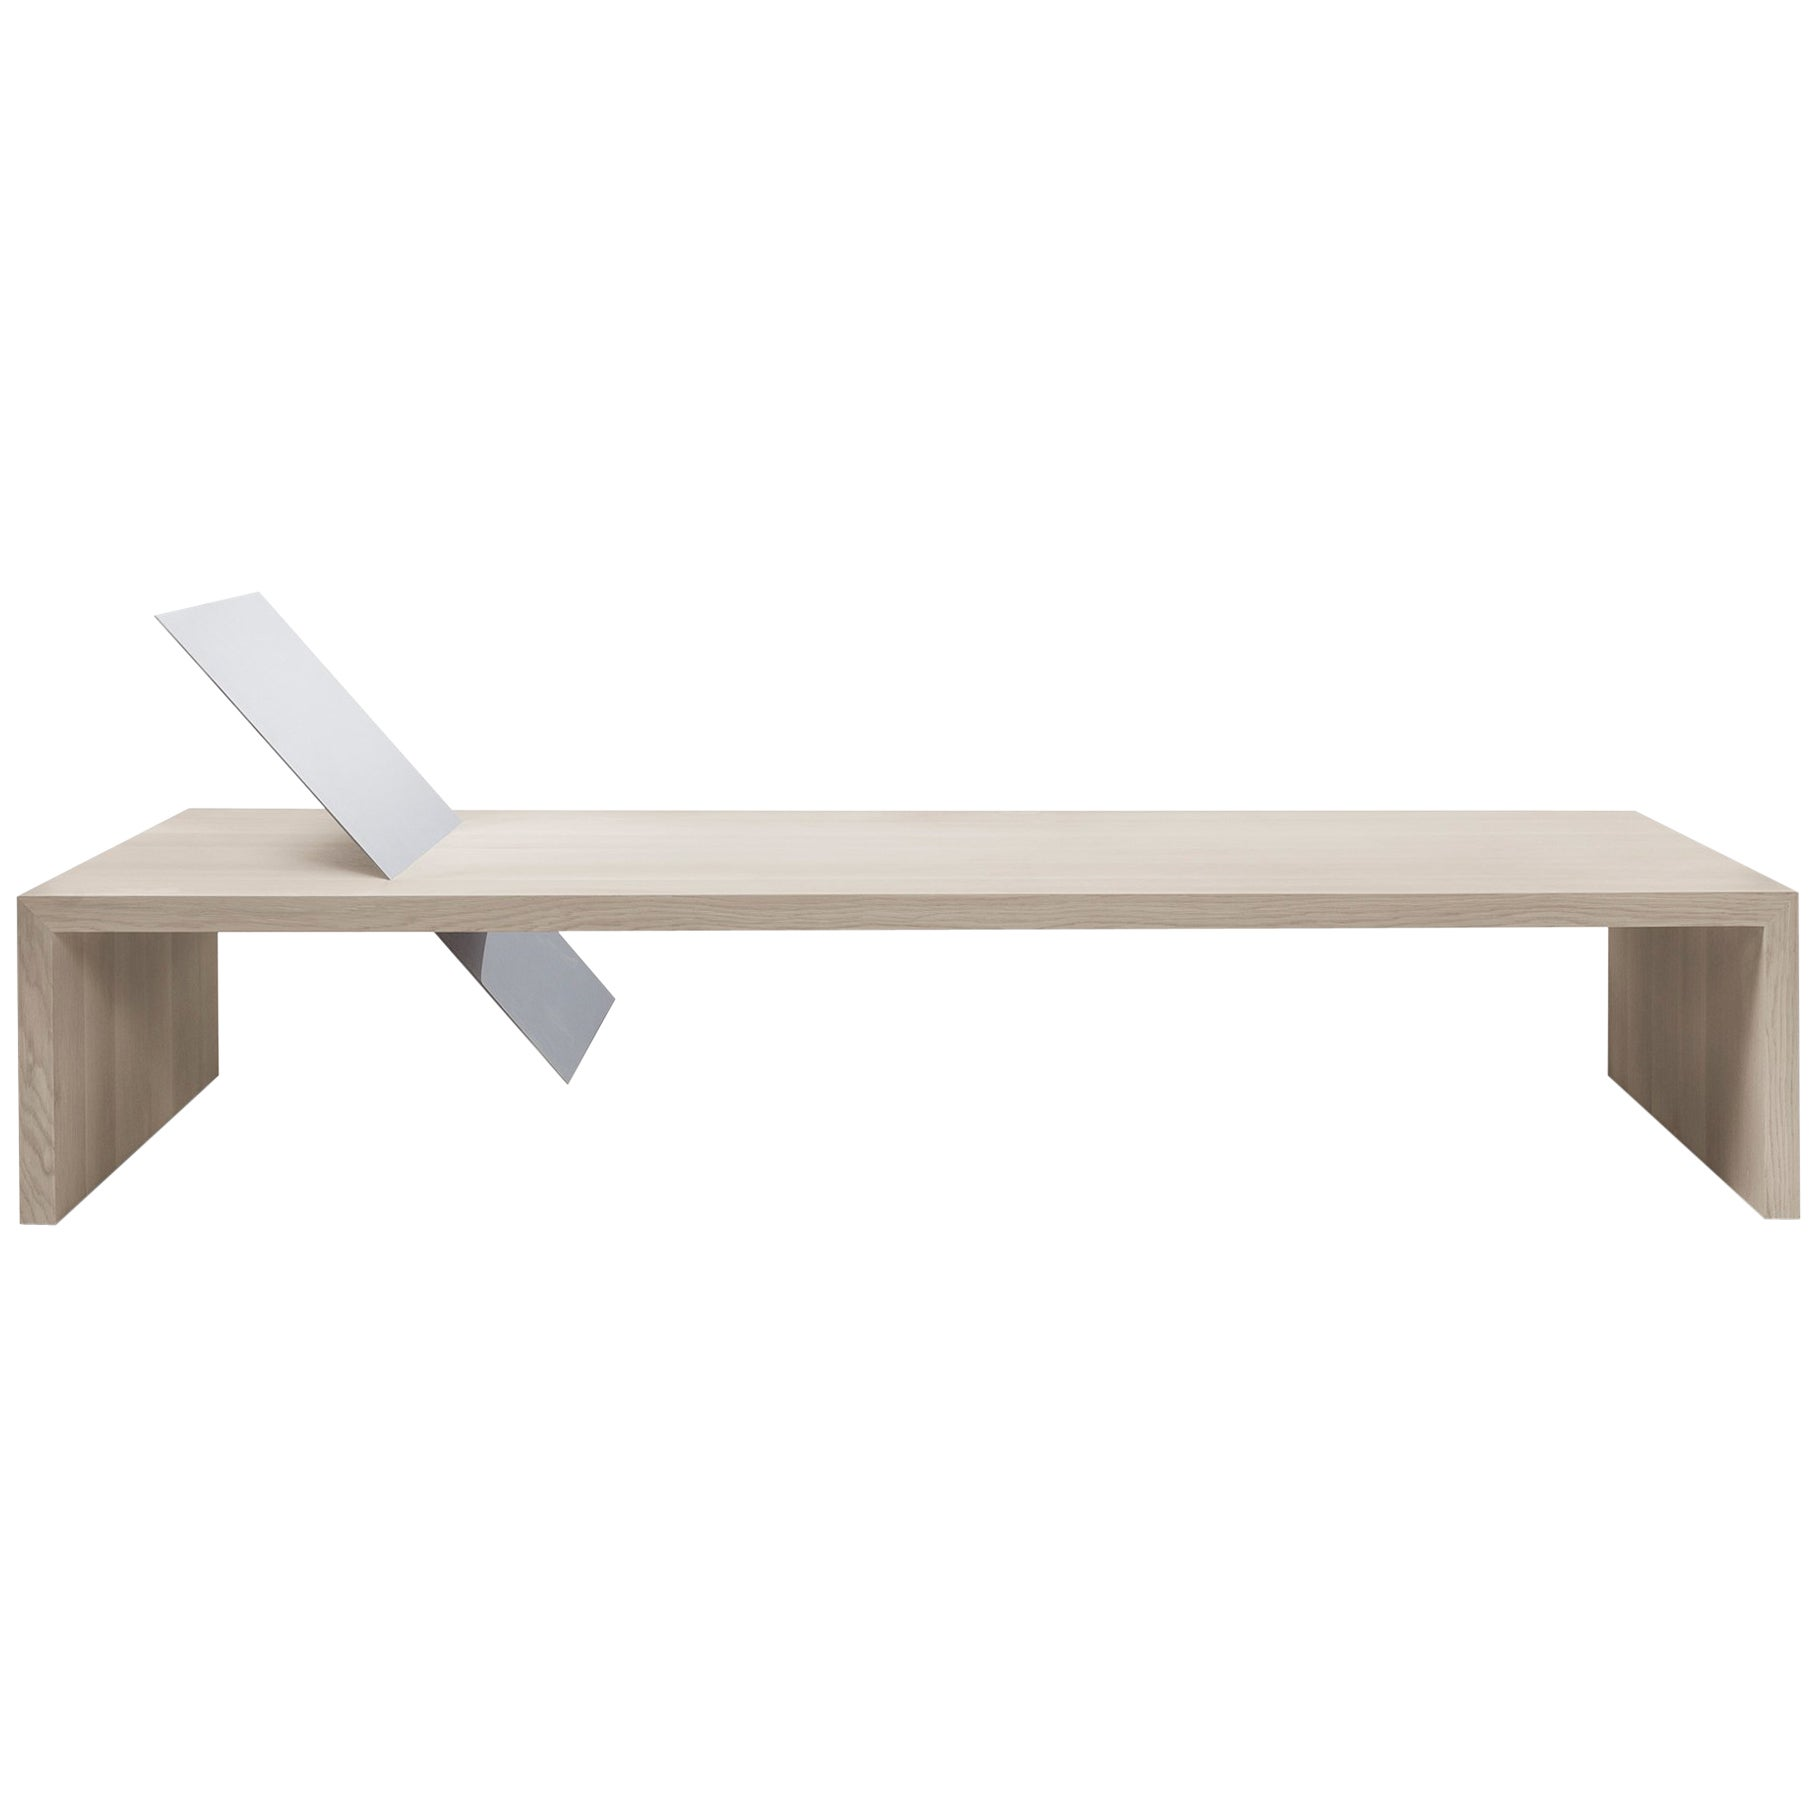 Contemporary Minimal Bleached Oak Daybed Bench Mirror Polish St Steel Backrest